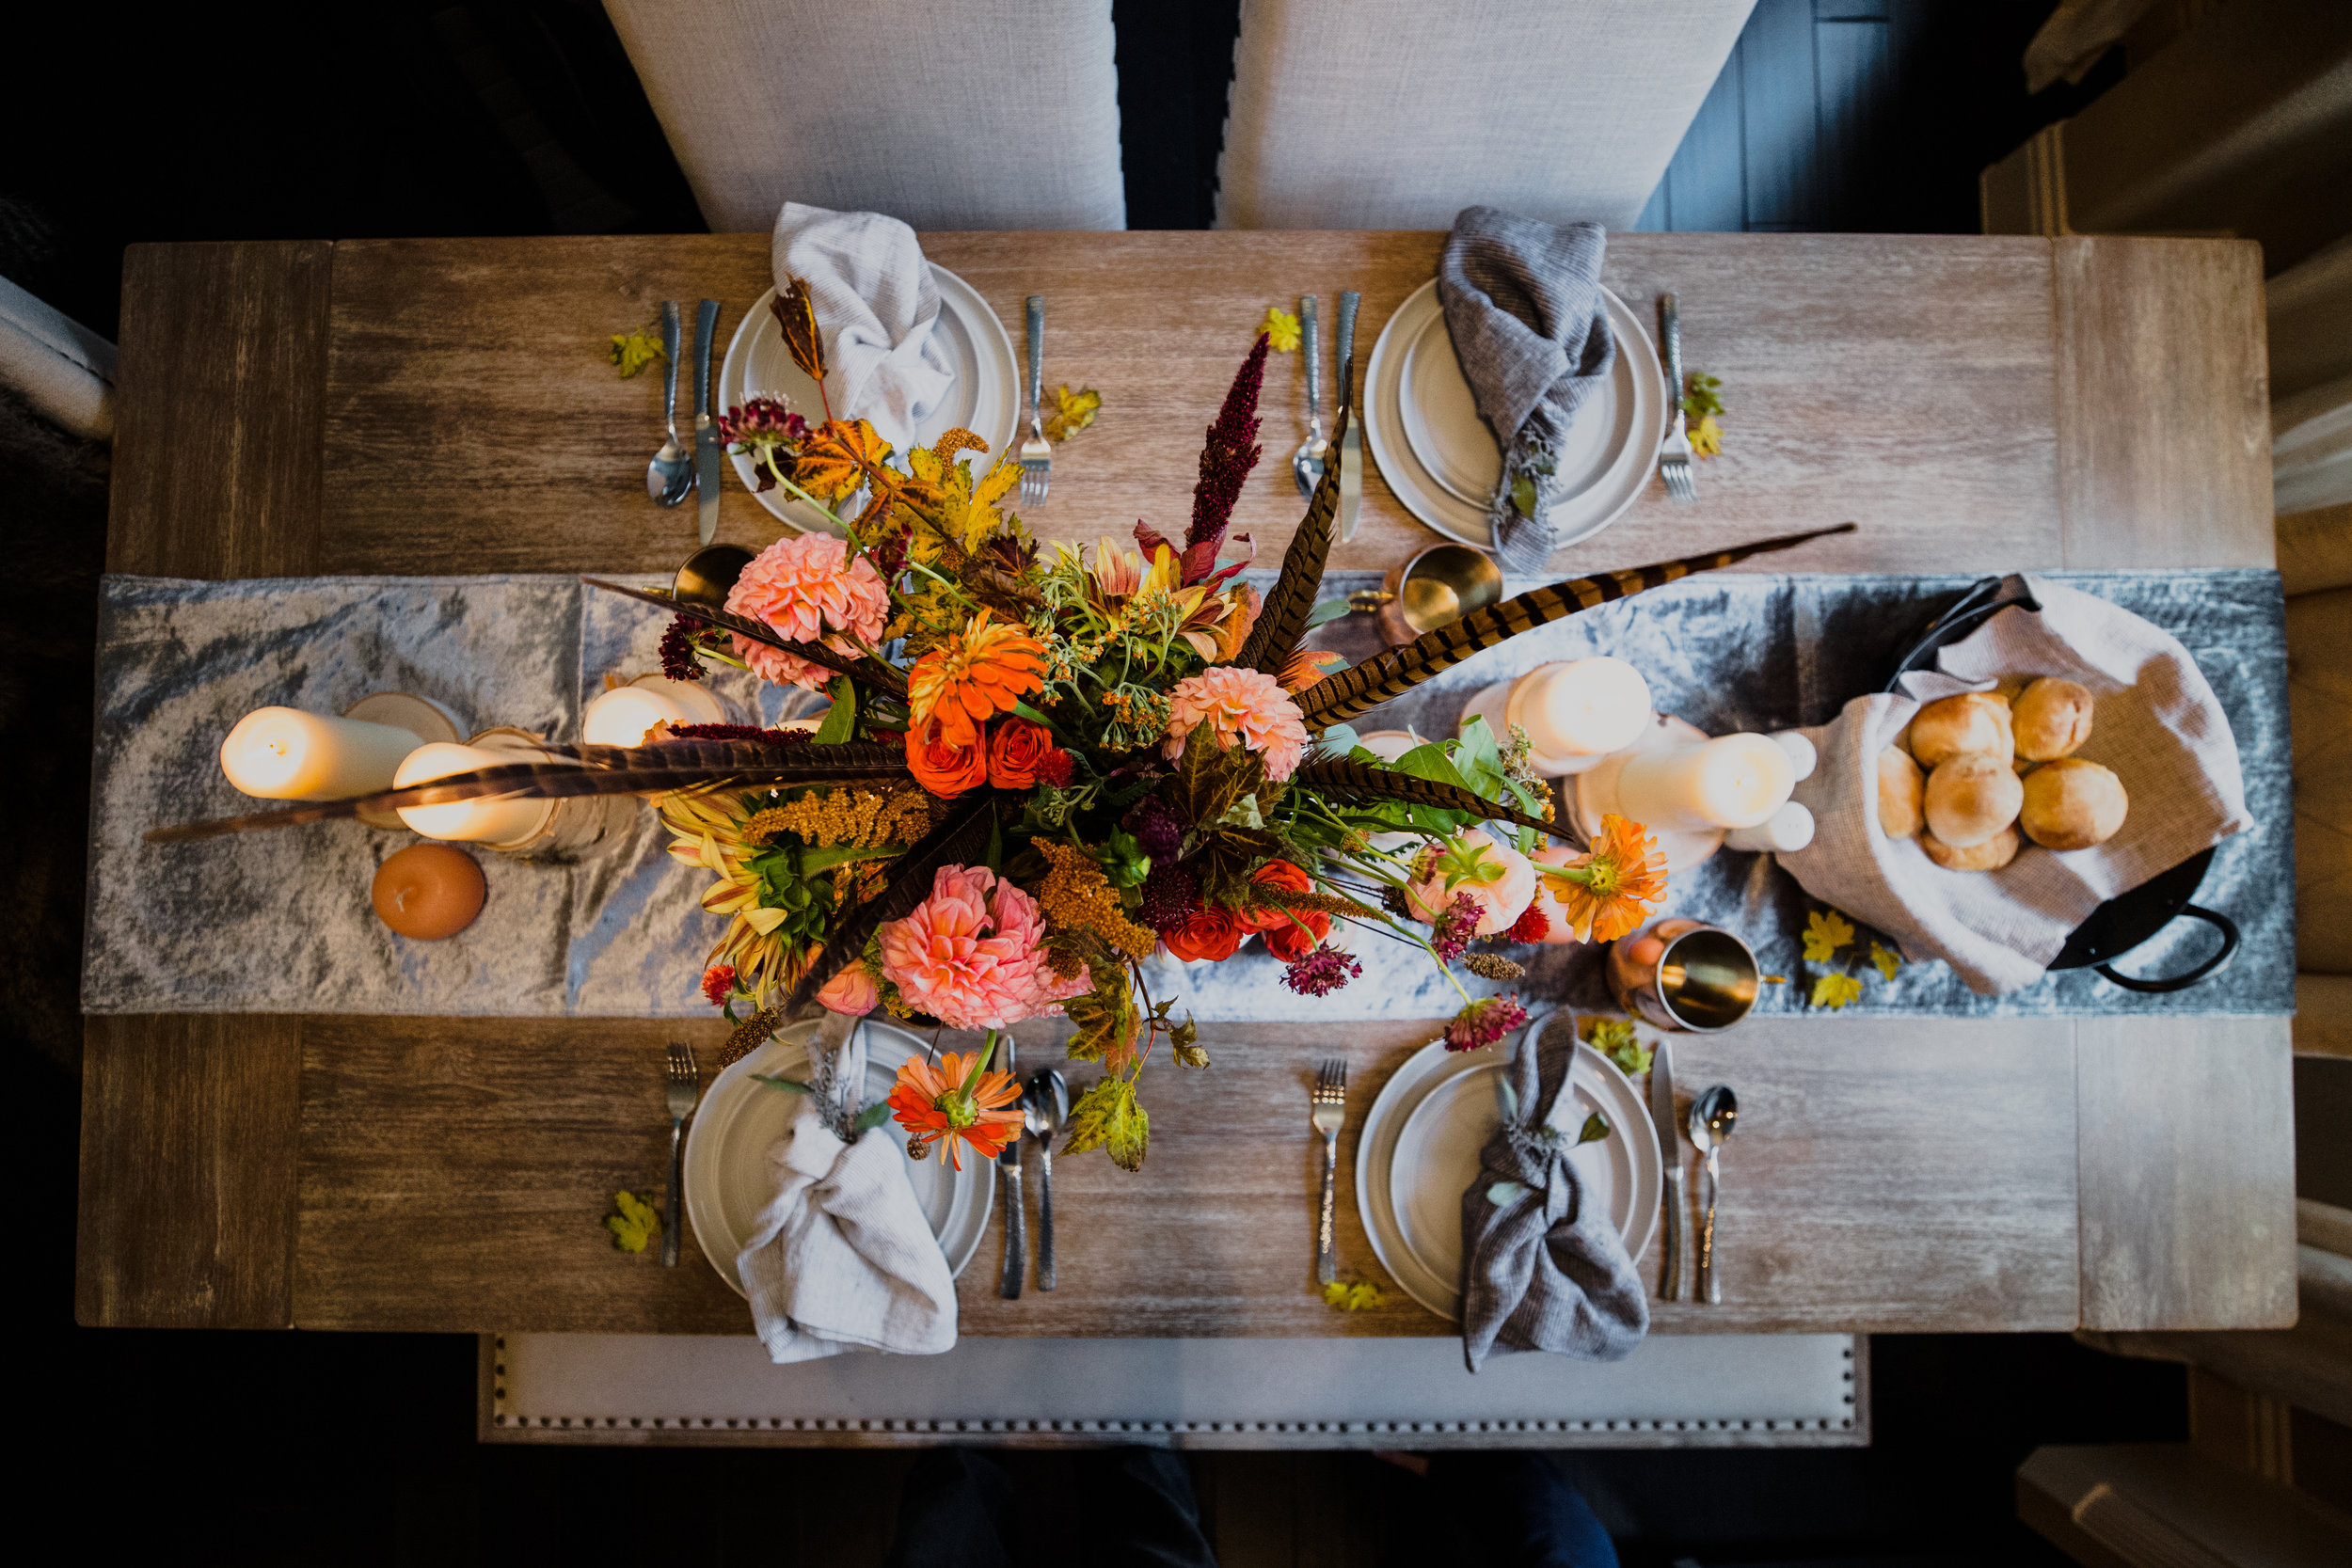 Fall Tablescape with Birchwood and Pumpkin Centerpiece